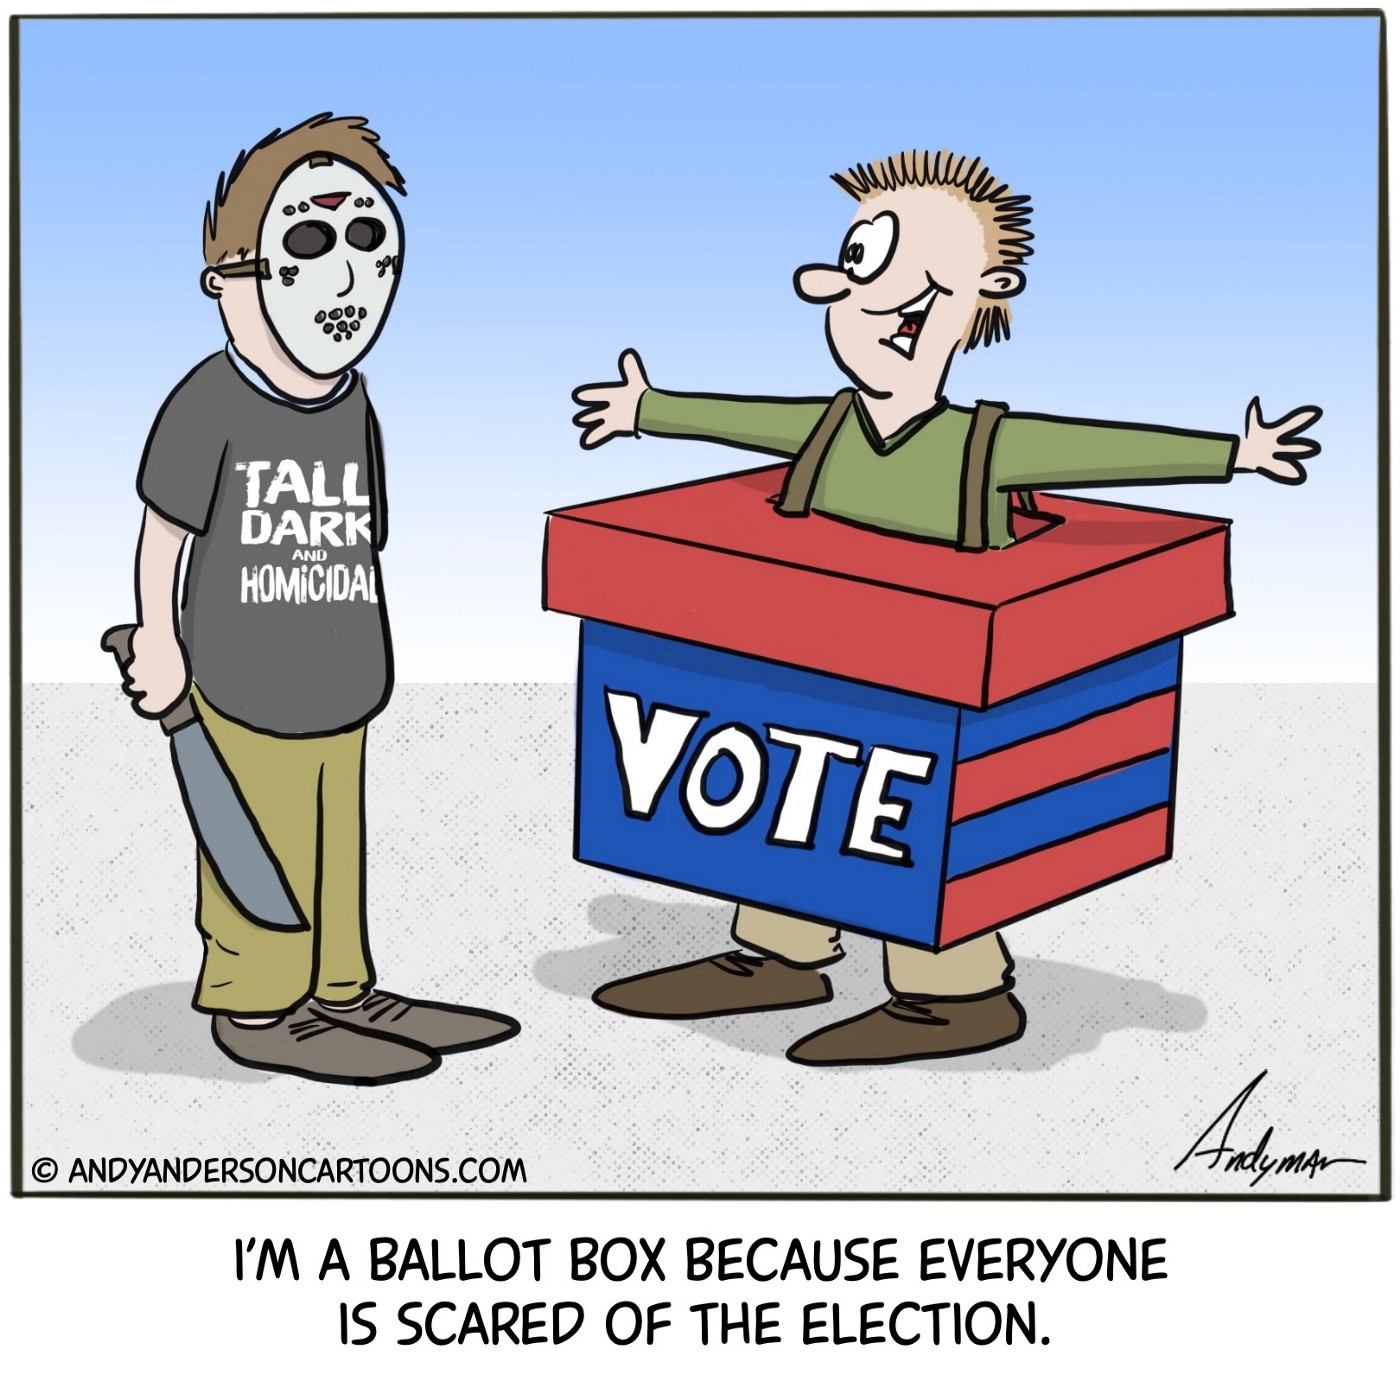 Cartoon someone is dressed as a ballot box because people are scared of the 2020 election by Andy anderson